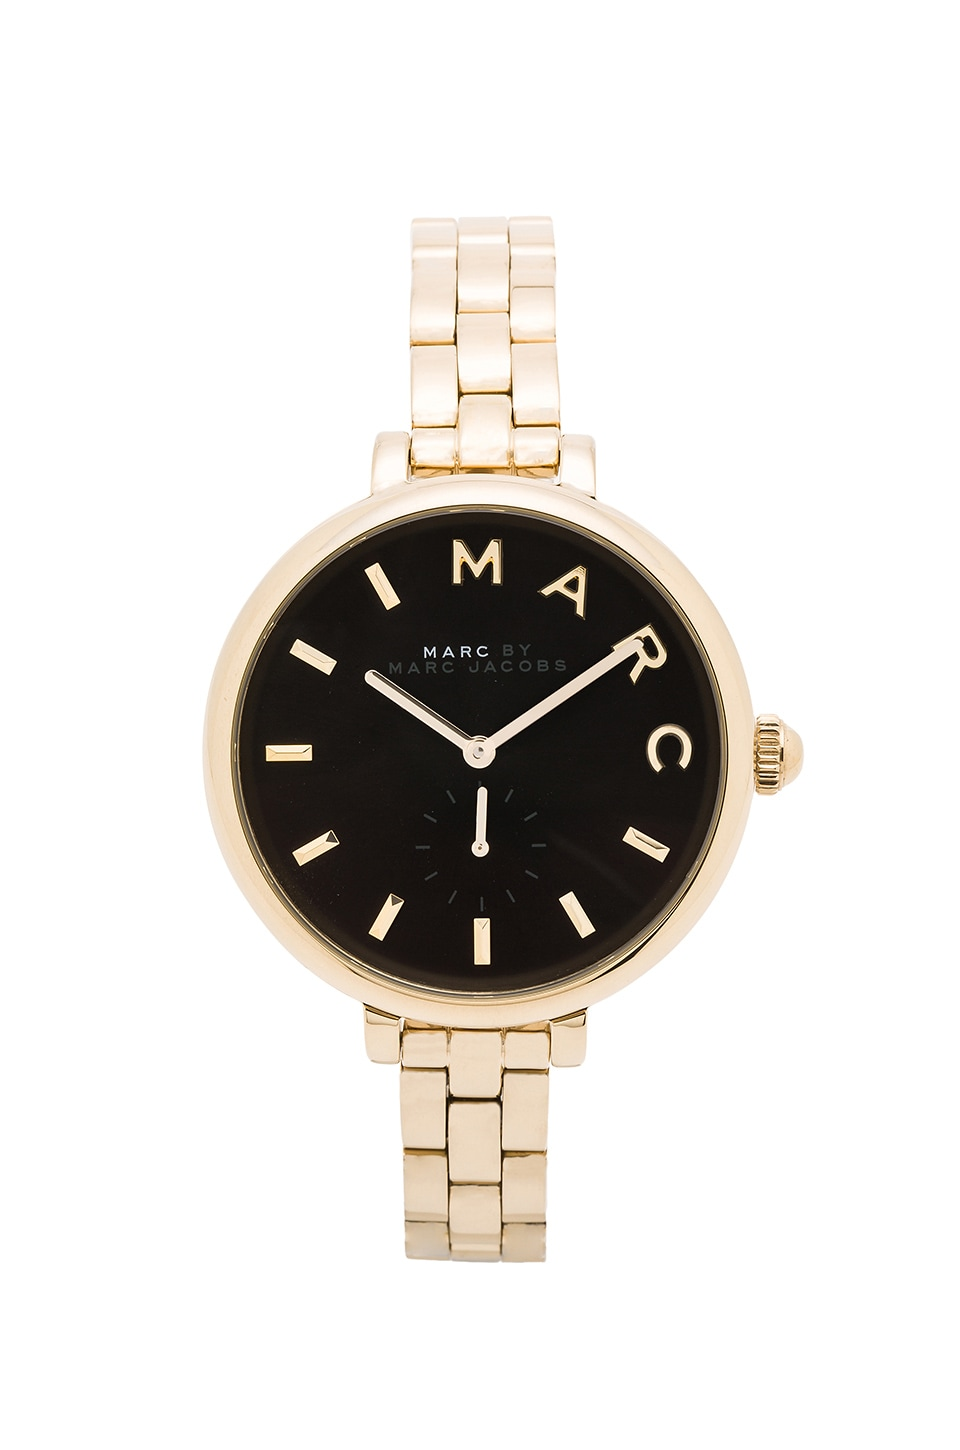 Marc by Marc Jacobs Sally Watch in Black & Gold